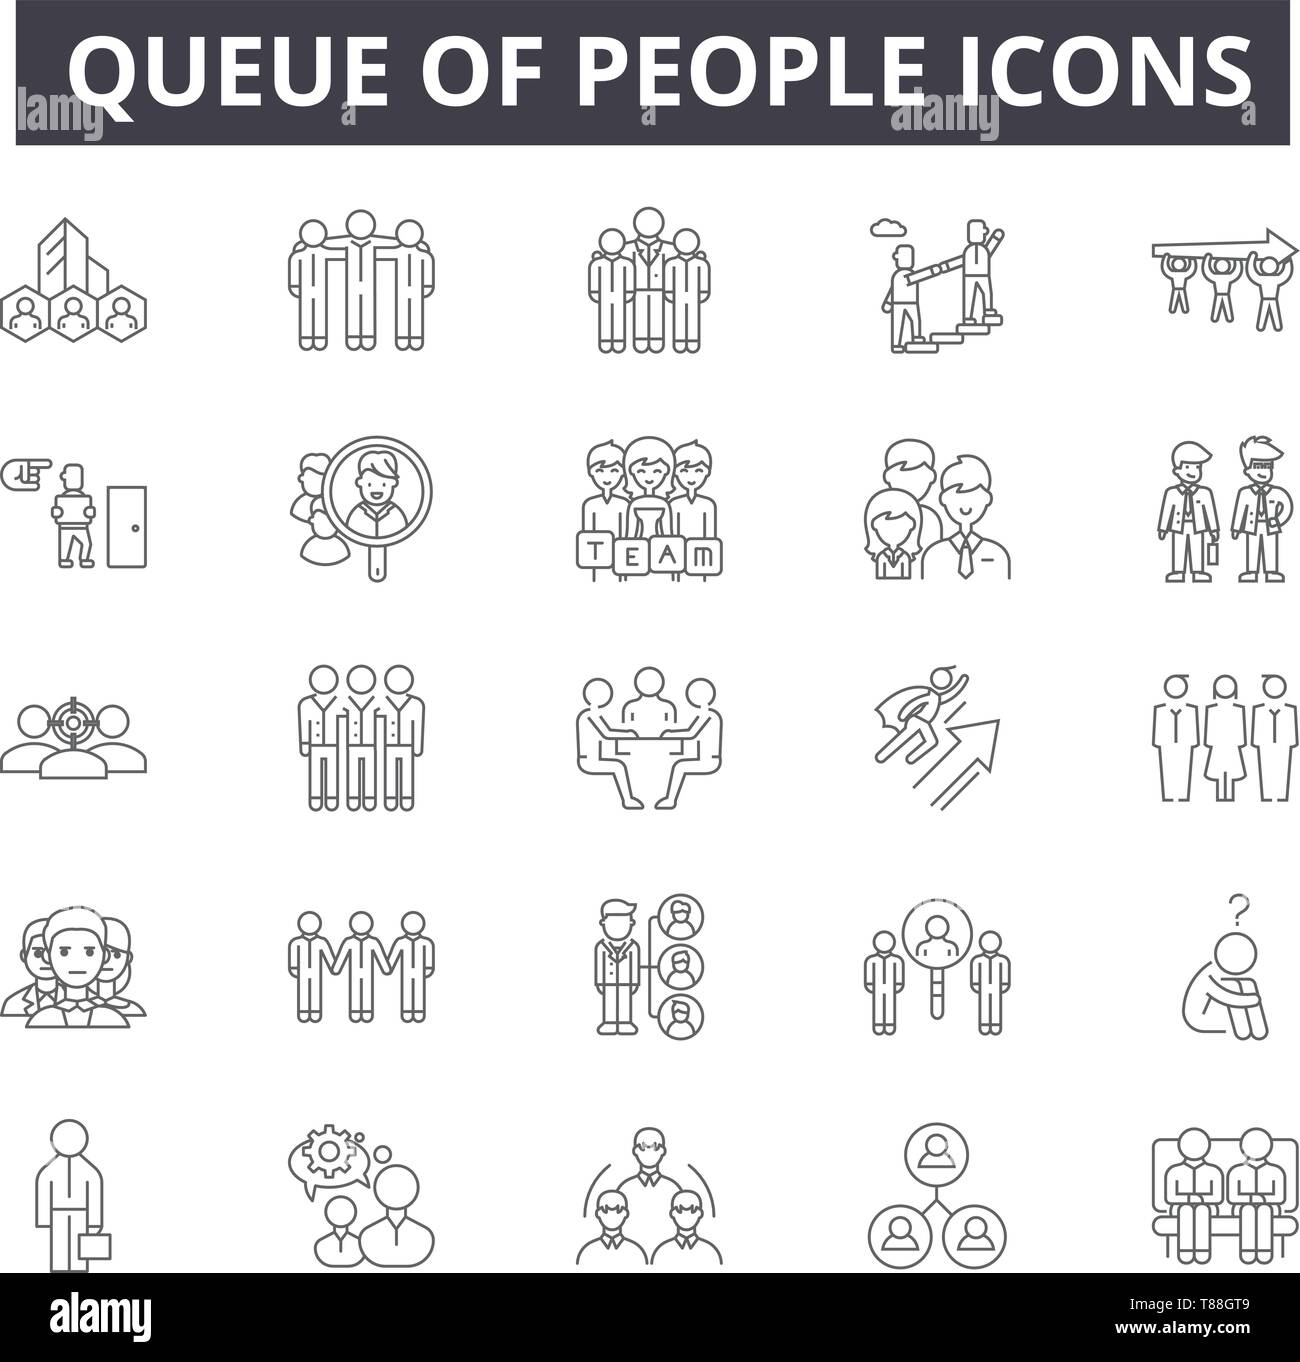 Queue of people line icons, signs, vector set, outline